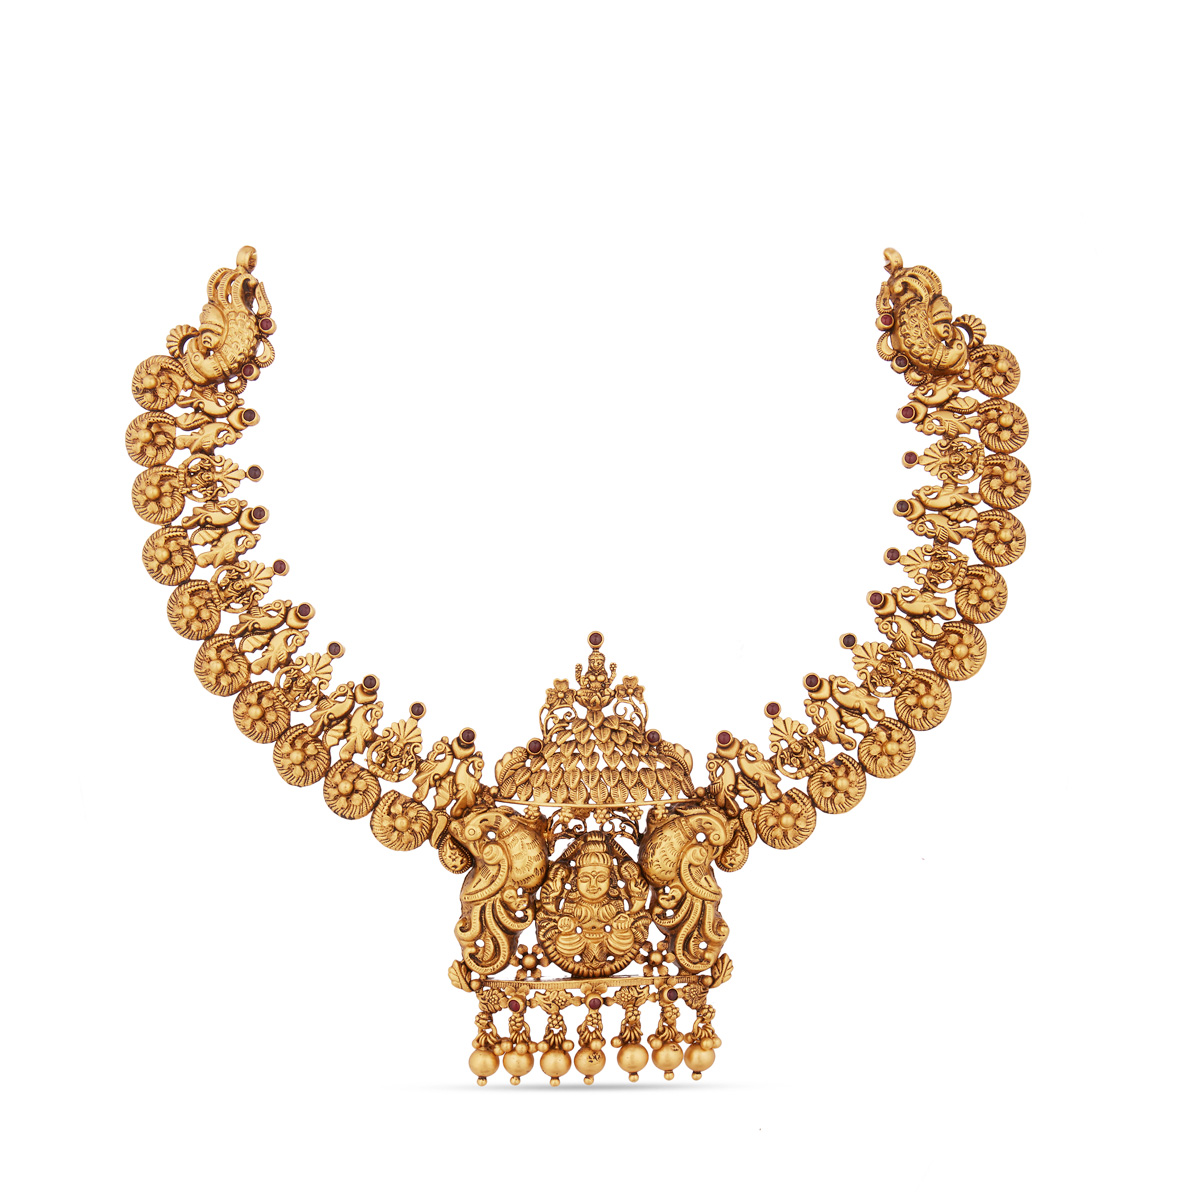 bf1edba8a2 Buy Gold Jewellery Online | Designer Indian Gold Jewelry Online